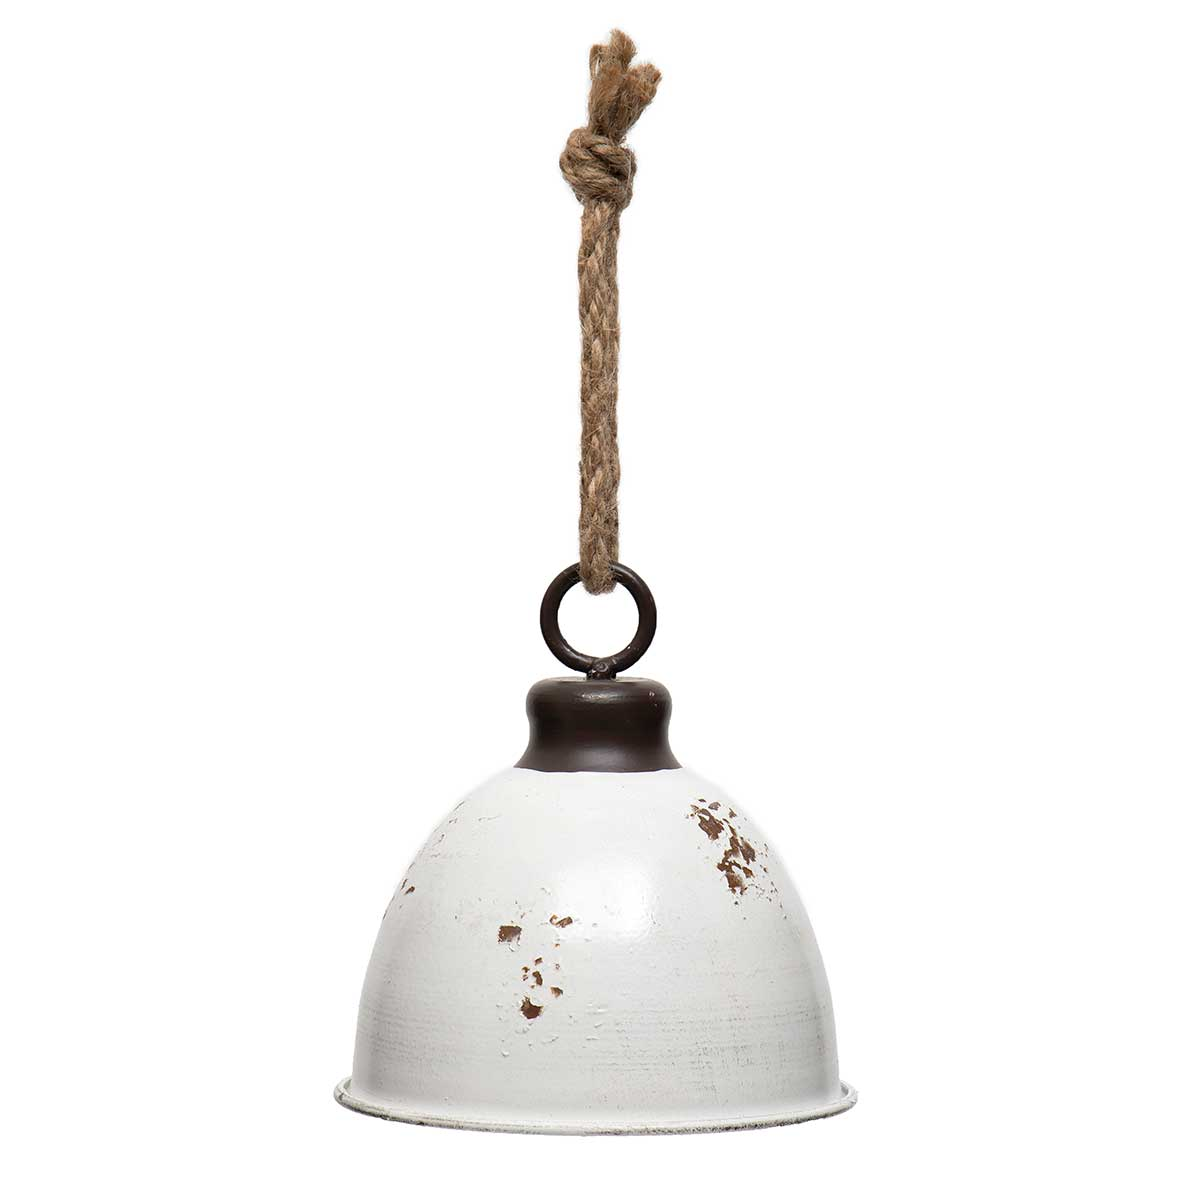 ANTIQUE WHITE METAL BELL WITH JINGLE BELL